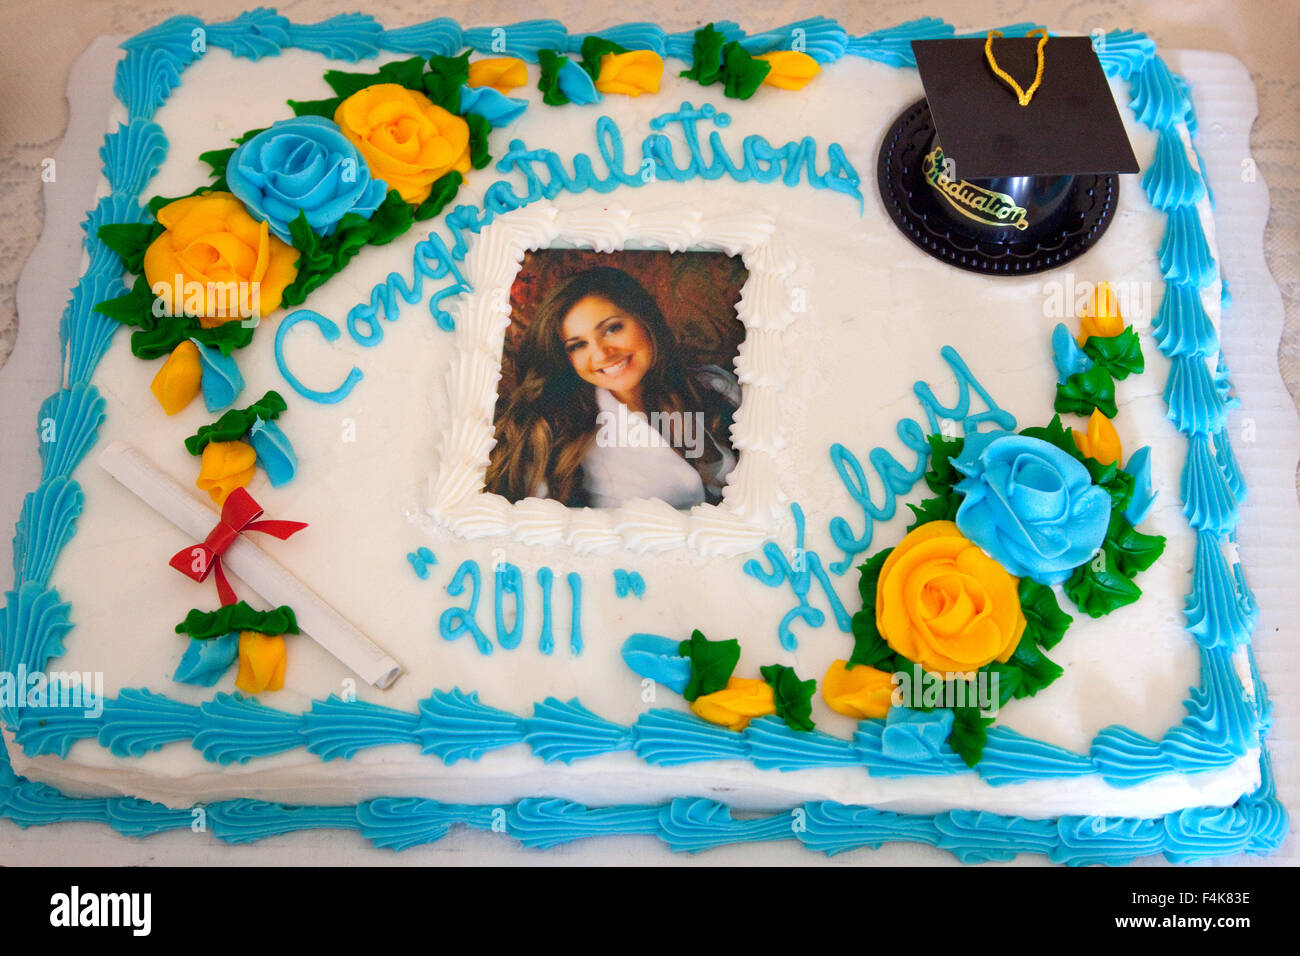 Graduation cake decorated with diploma, cap with tassel and flowers. Mahtomedi Minnesota MN USA - Stock Image